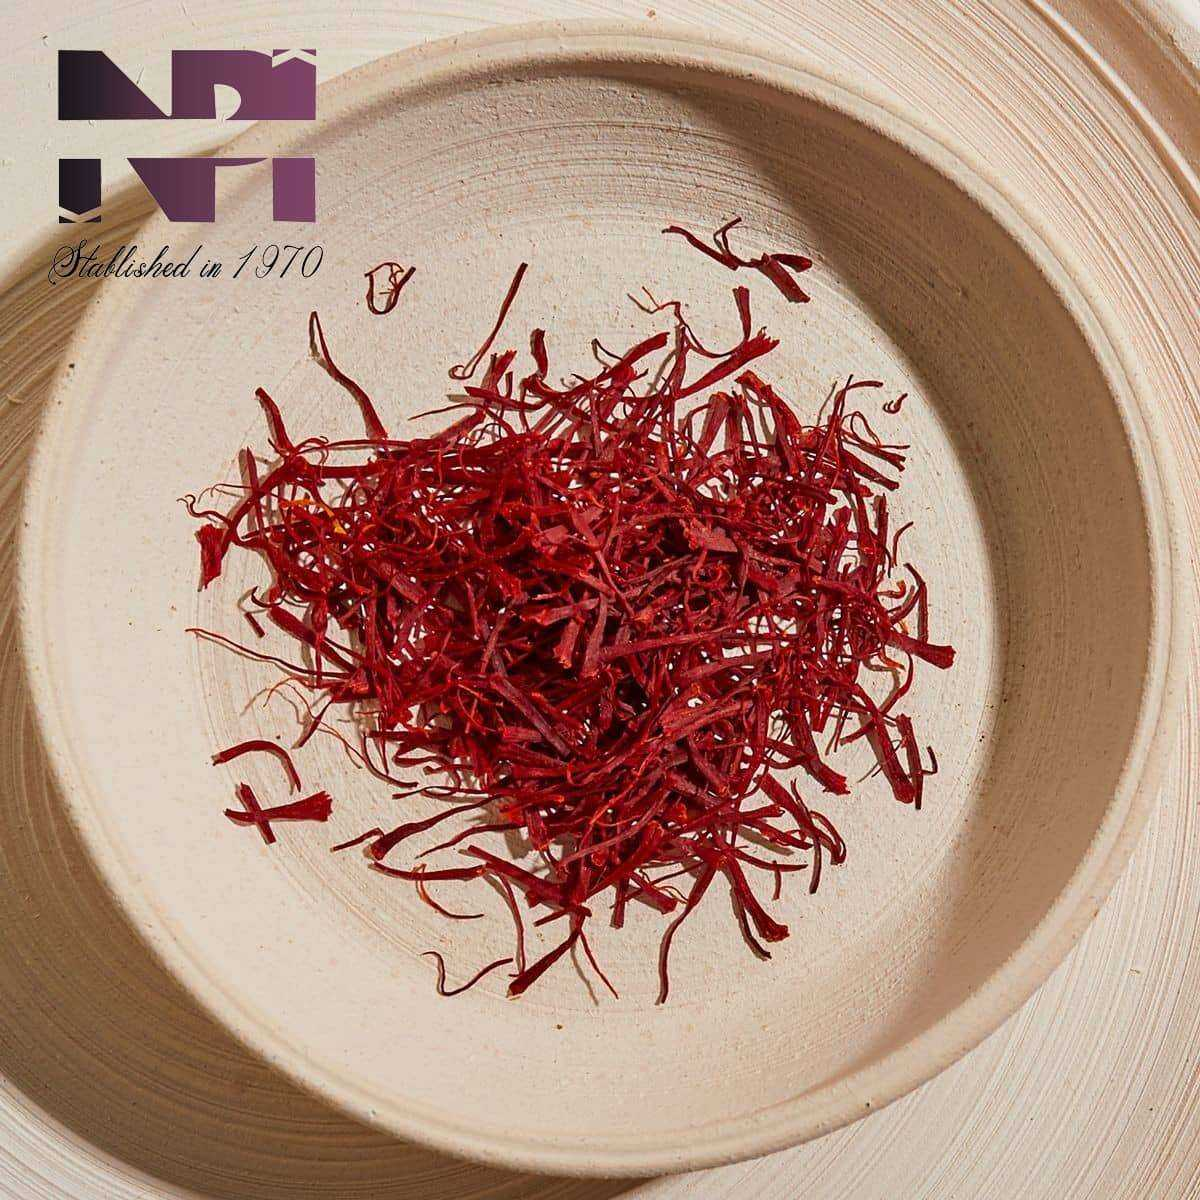 the best type of saffron is to buy